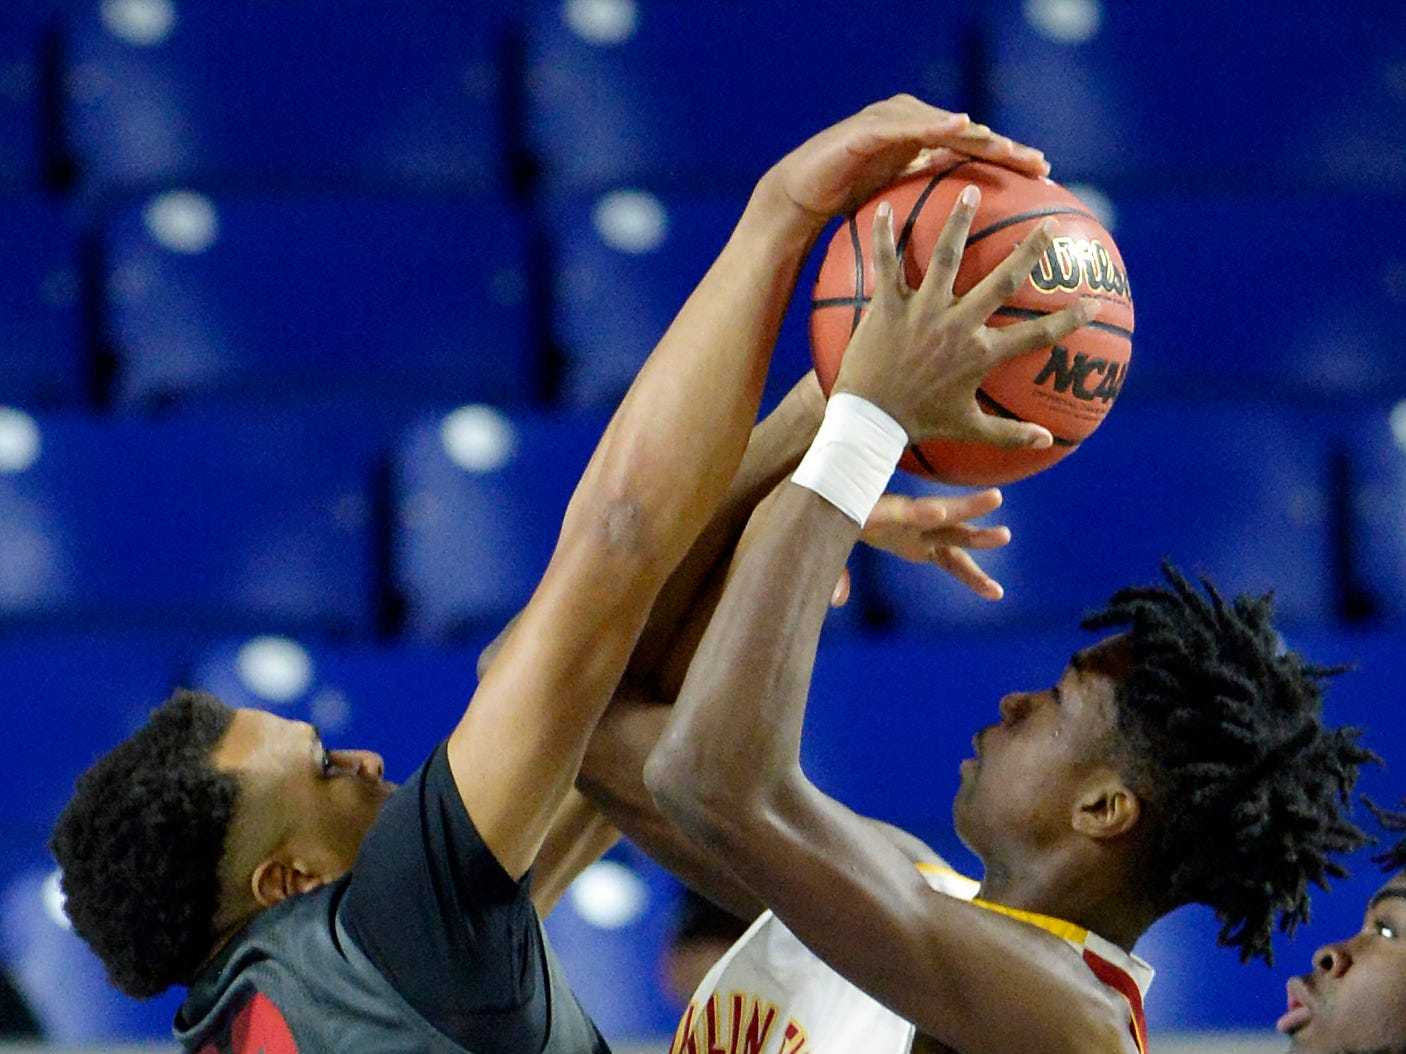 East Nashville forward Lester Shaw (10) blocks a shot by Howard forward Kerrick Thorne (14) during the first half of a Class AA boys' state basketball quarterfinal game Wednesday, March 13, 2019, in Murfreesboro, Tenn.